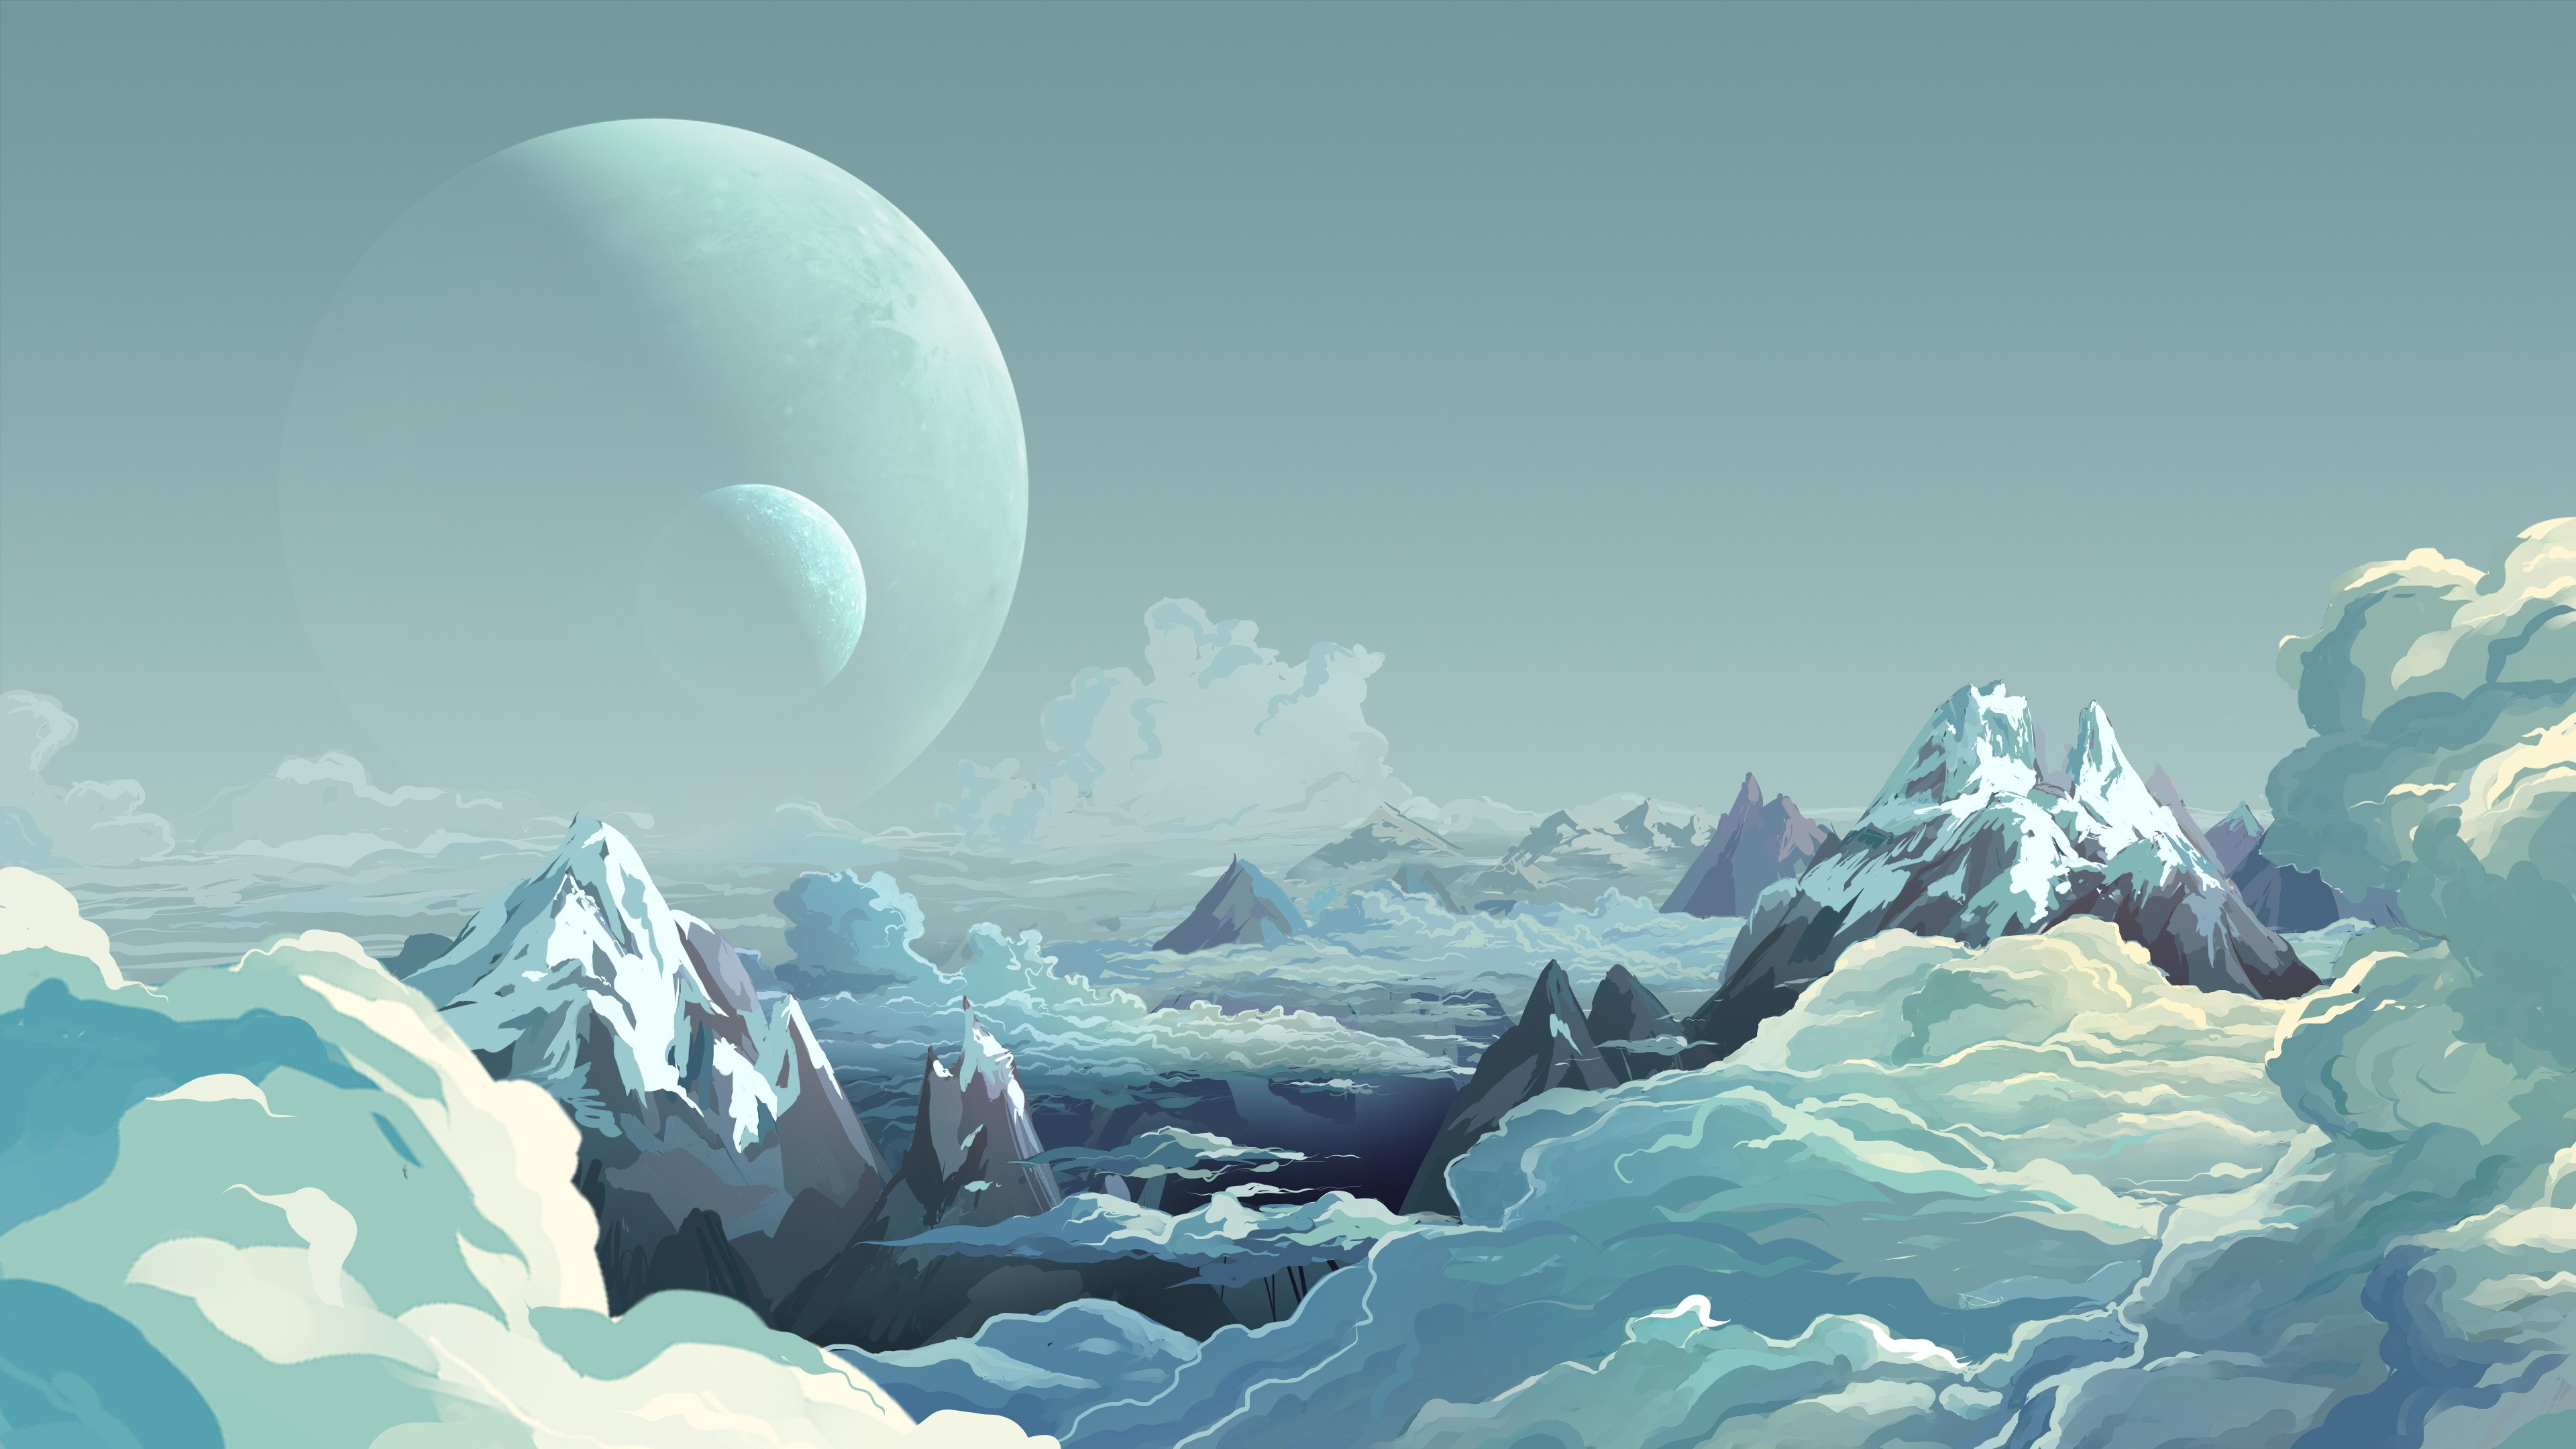 Alien Landscape Planets Mountains Clouds Drawing ...